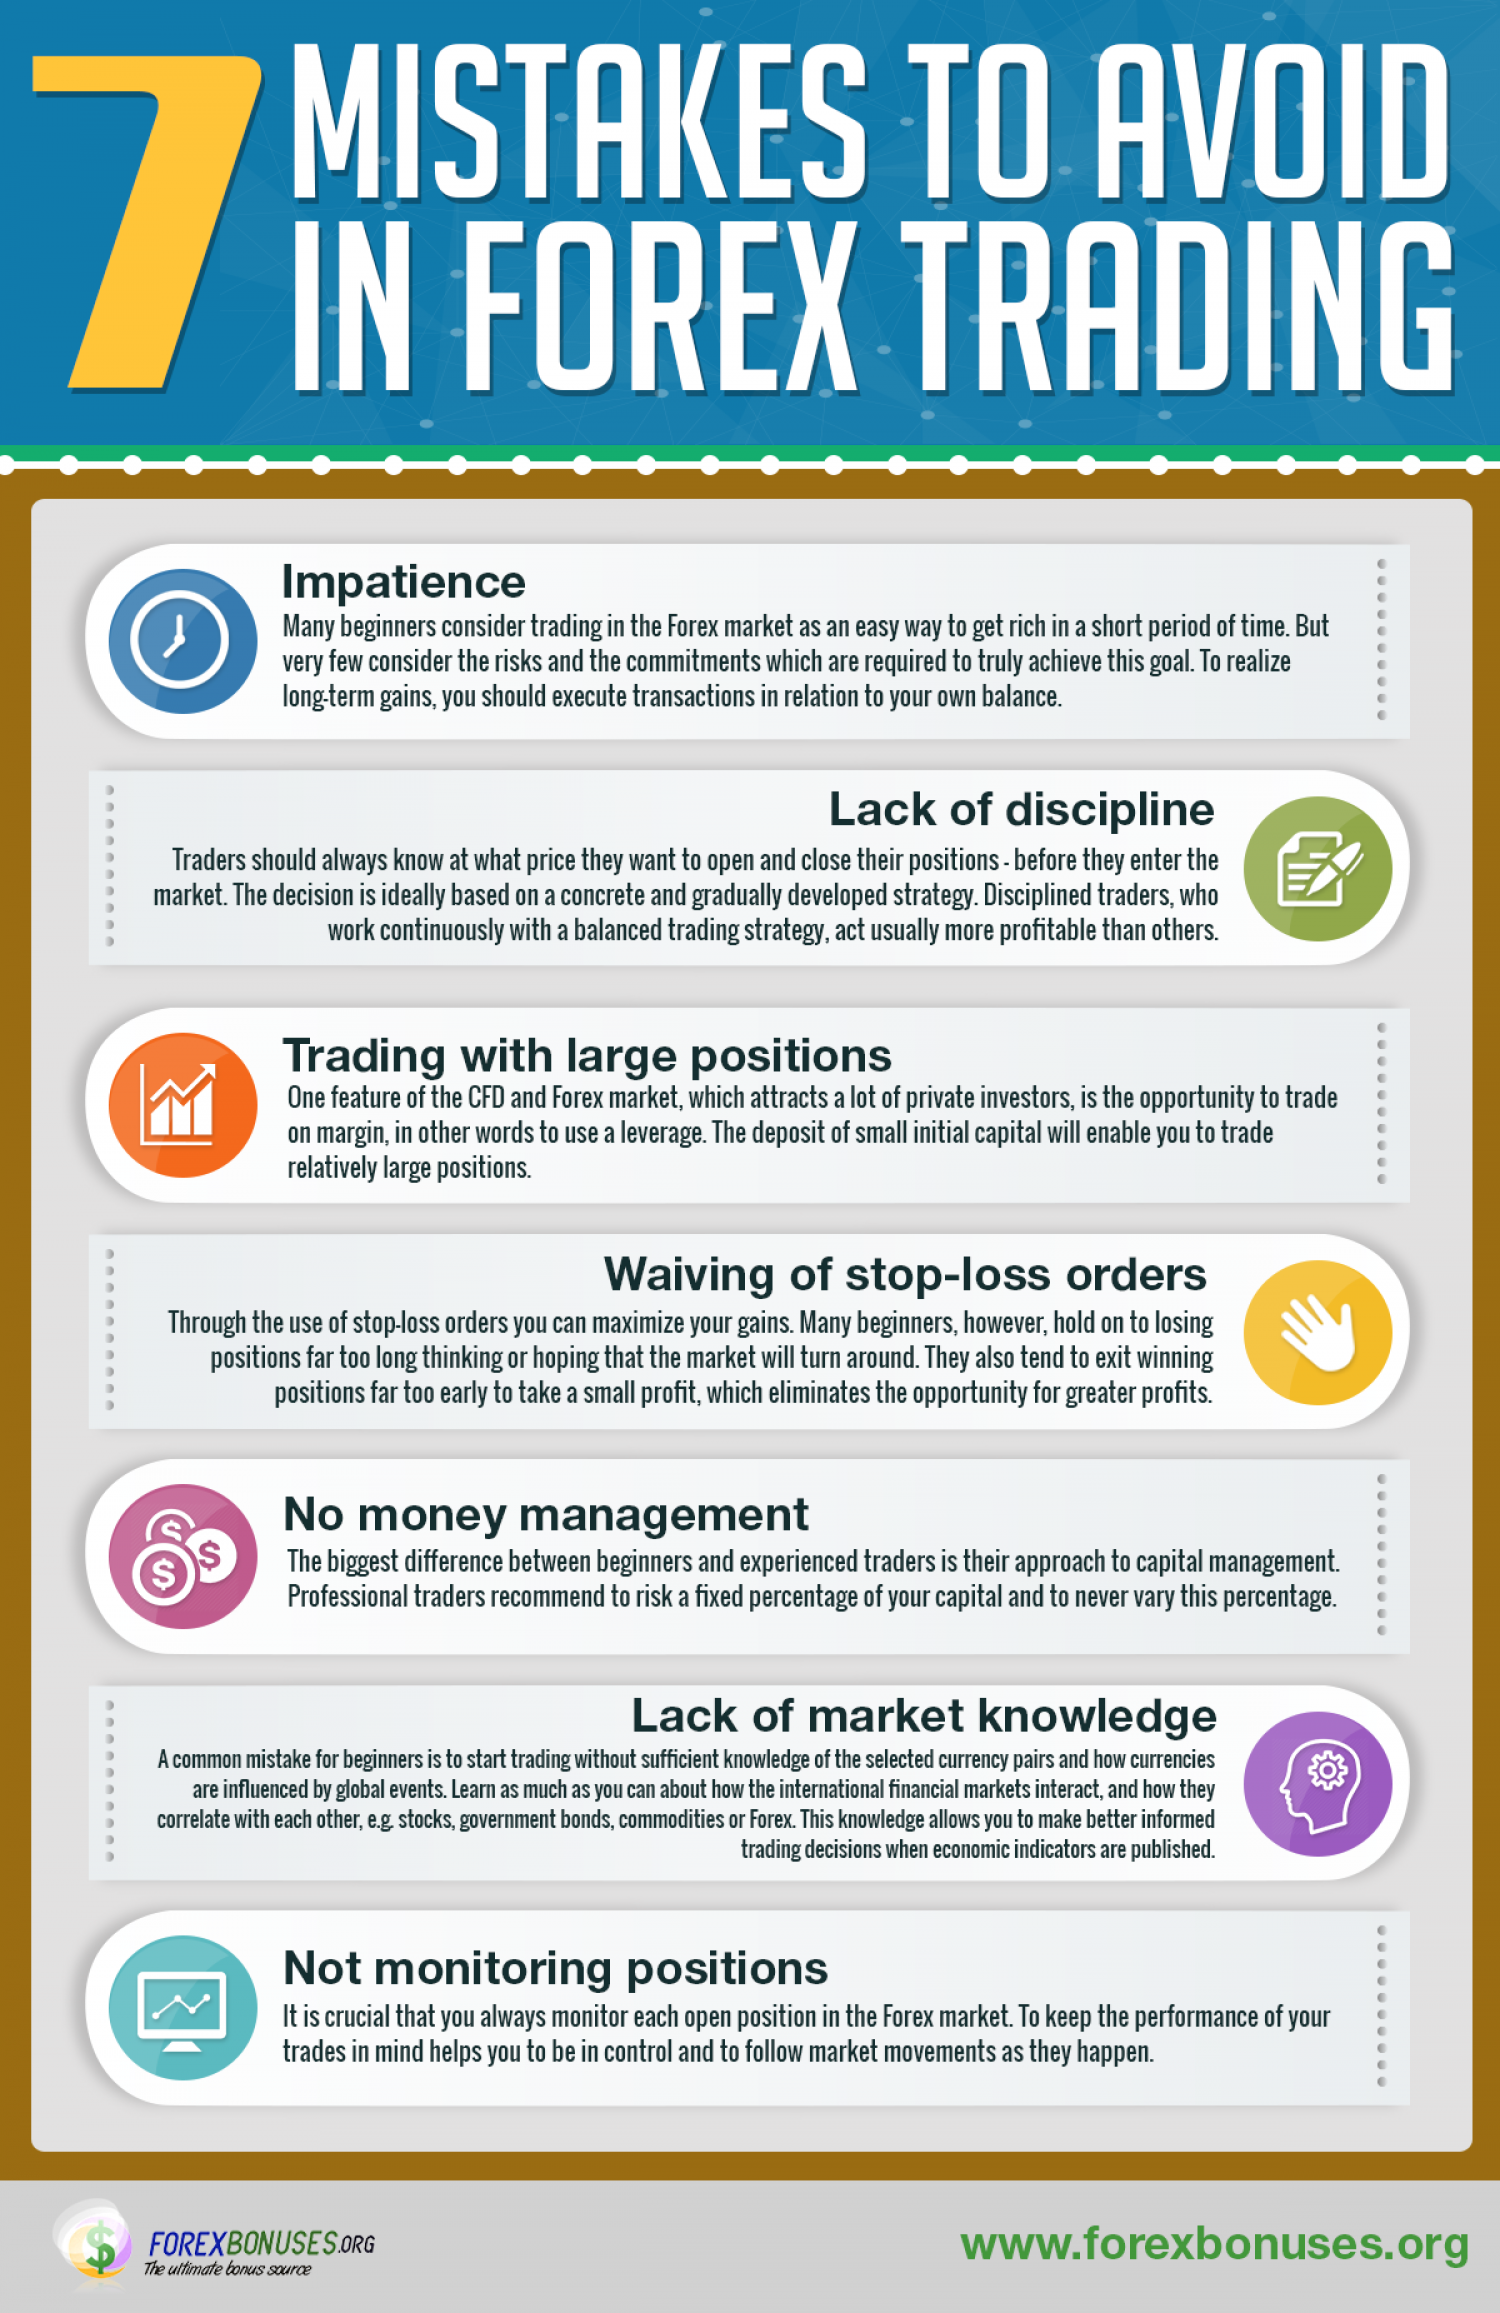 7 Mistakes to avoid when trading Forex Infographic